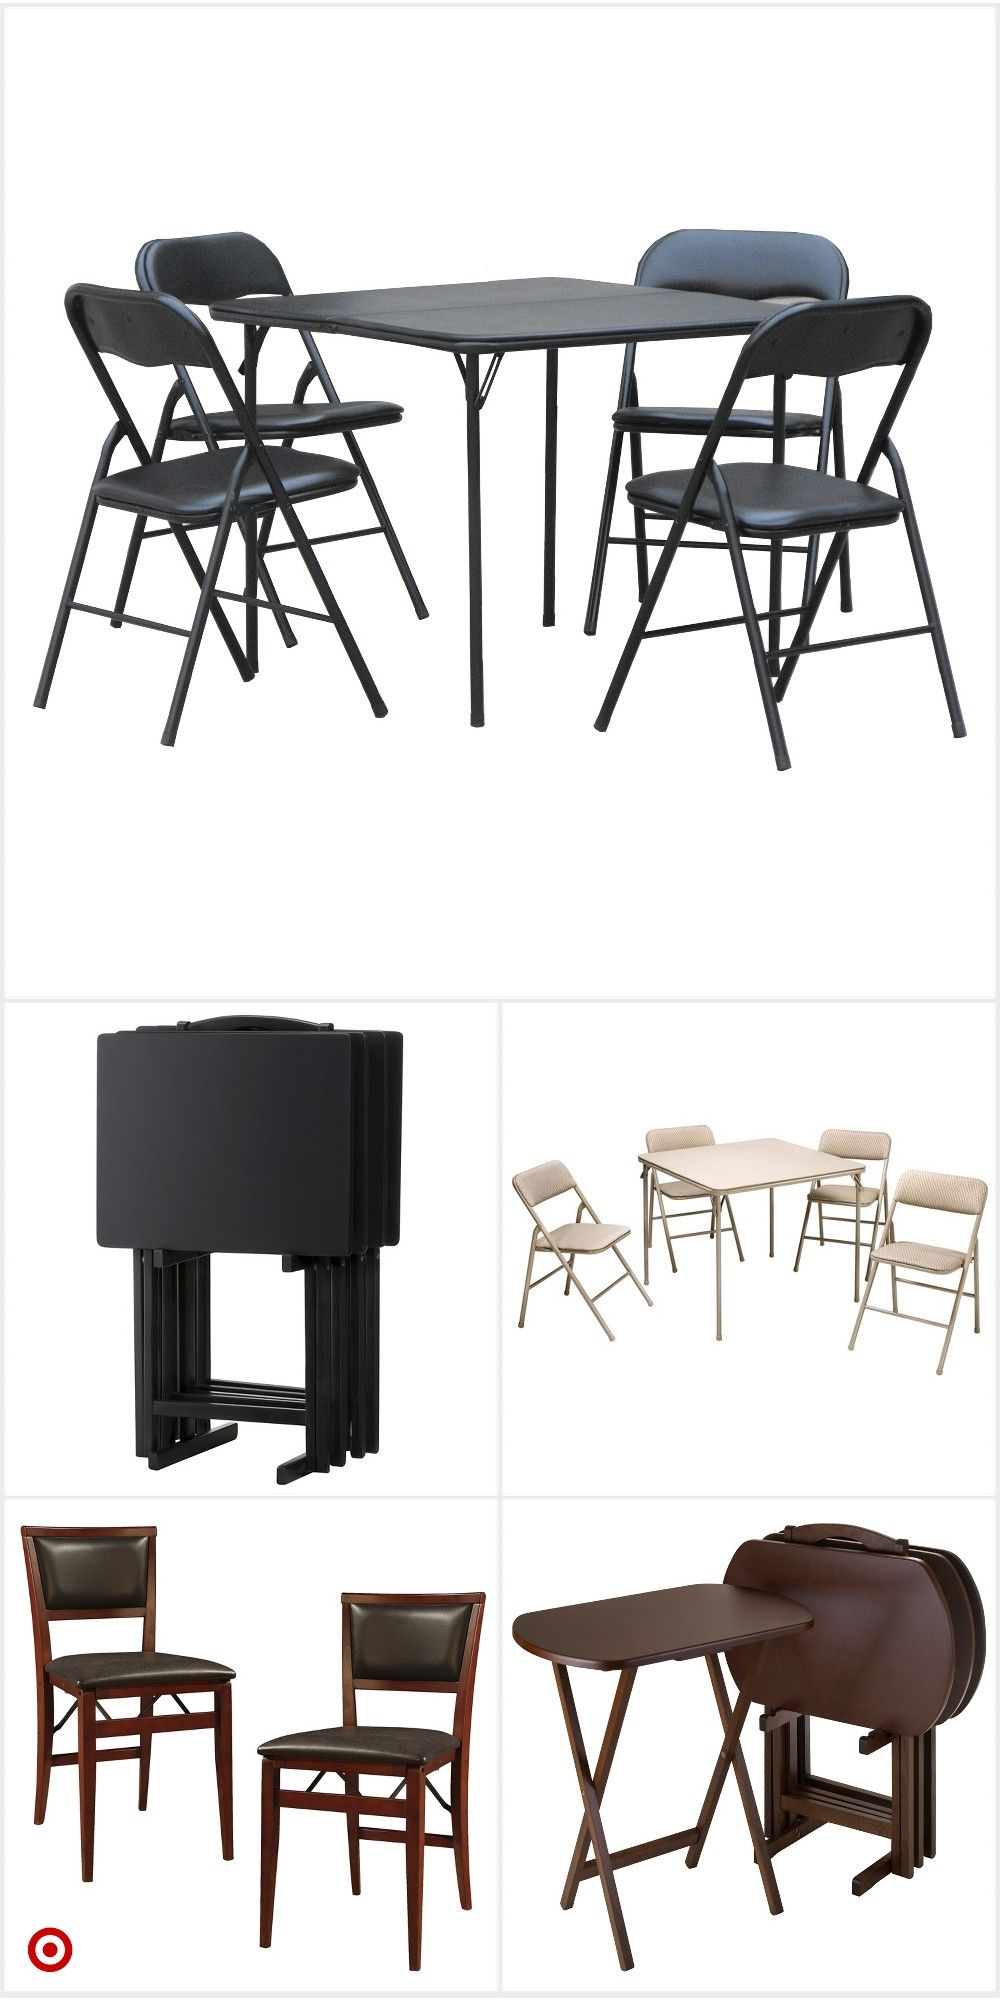 Shop Target For Folding Table Set You Will Love At Great Low